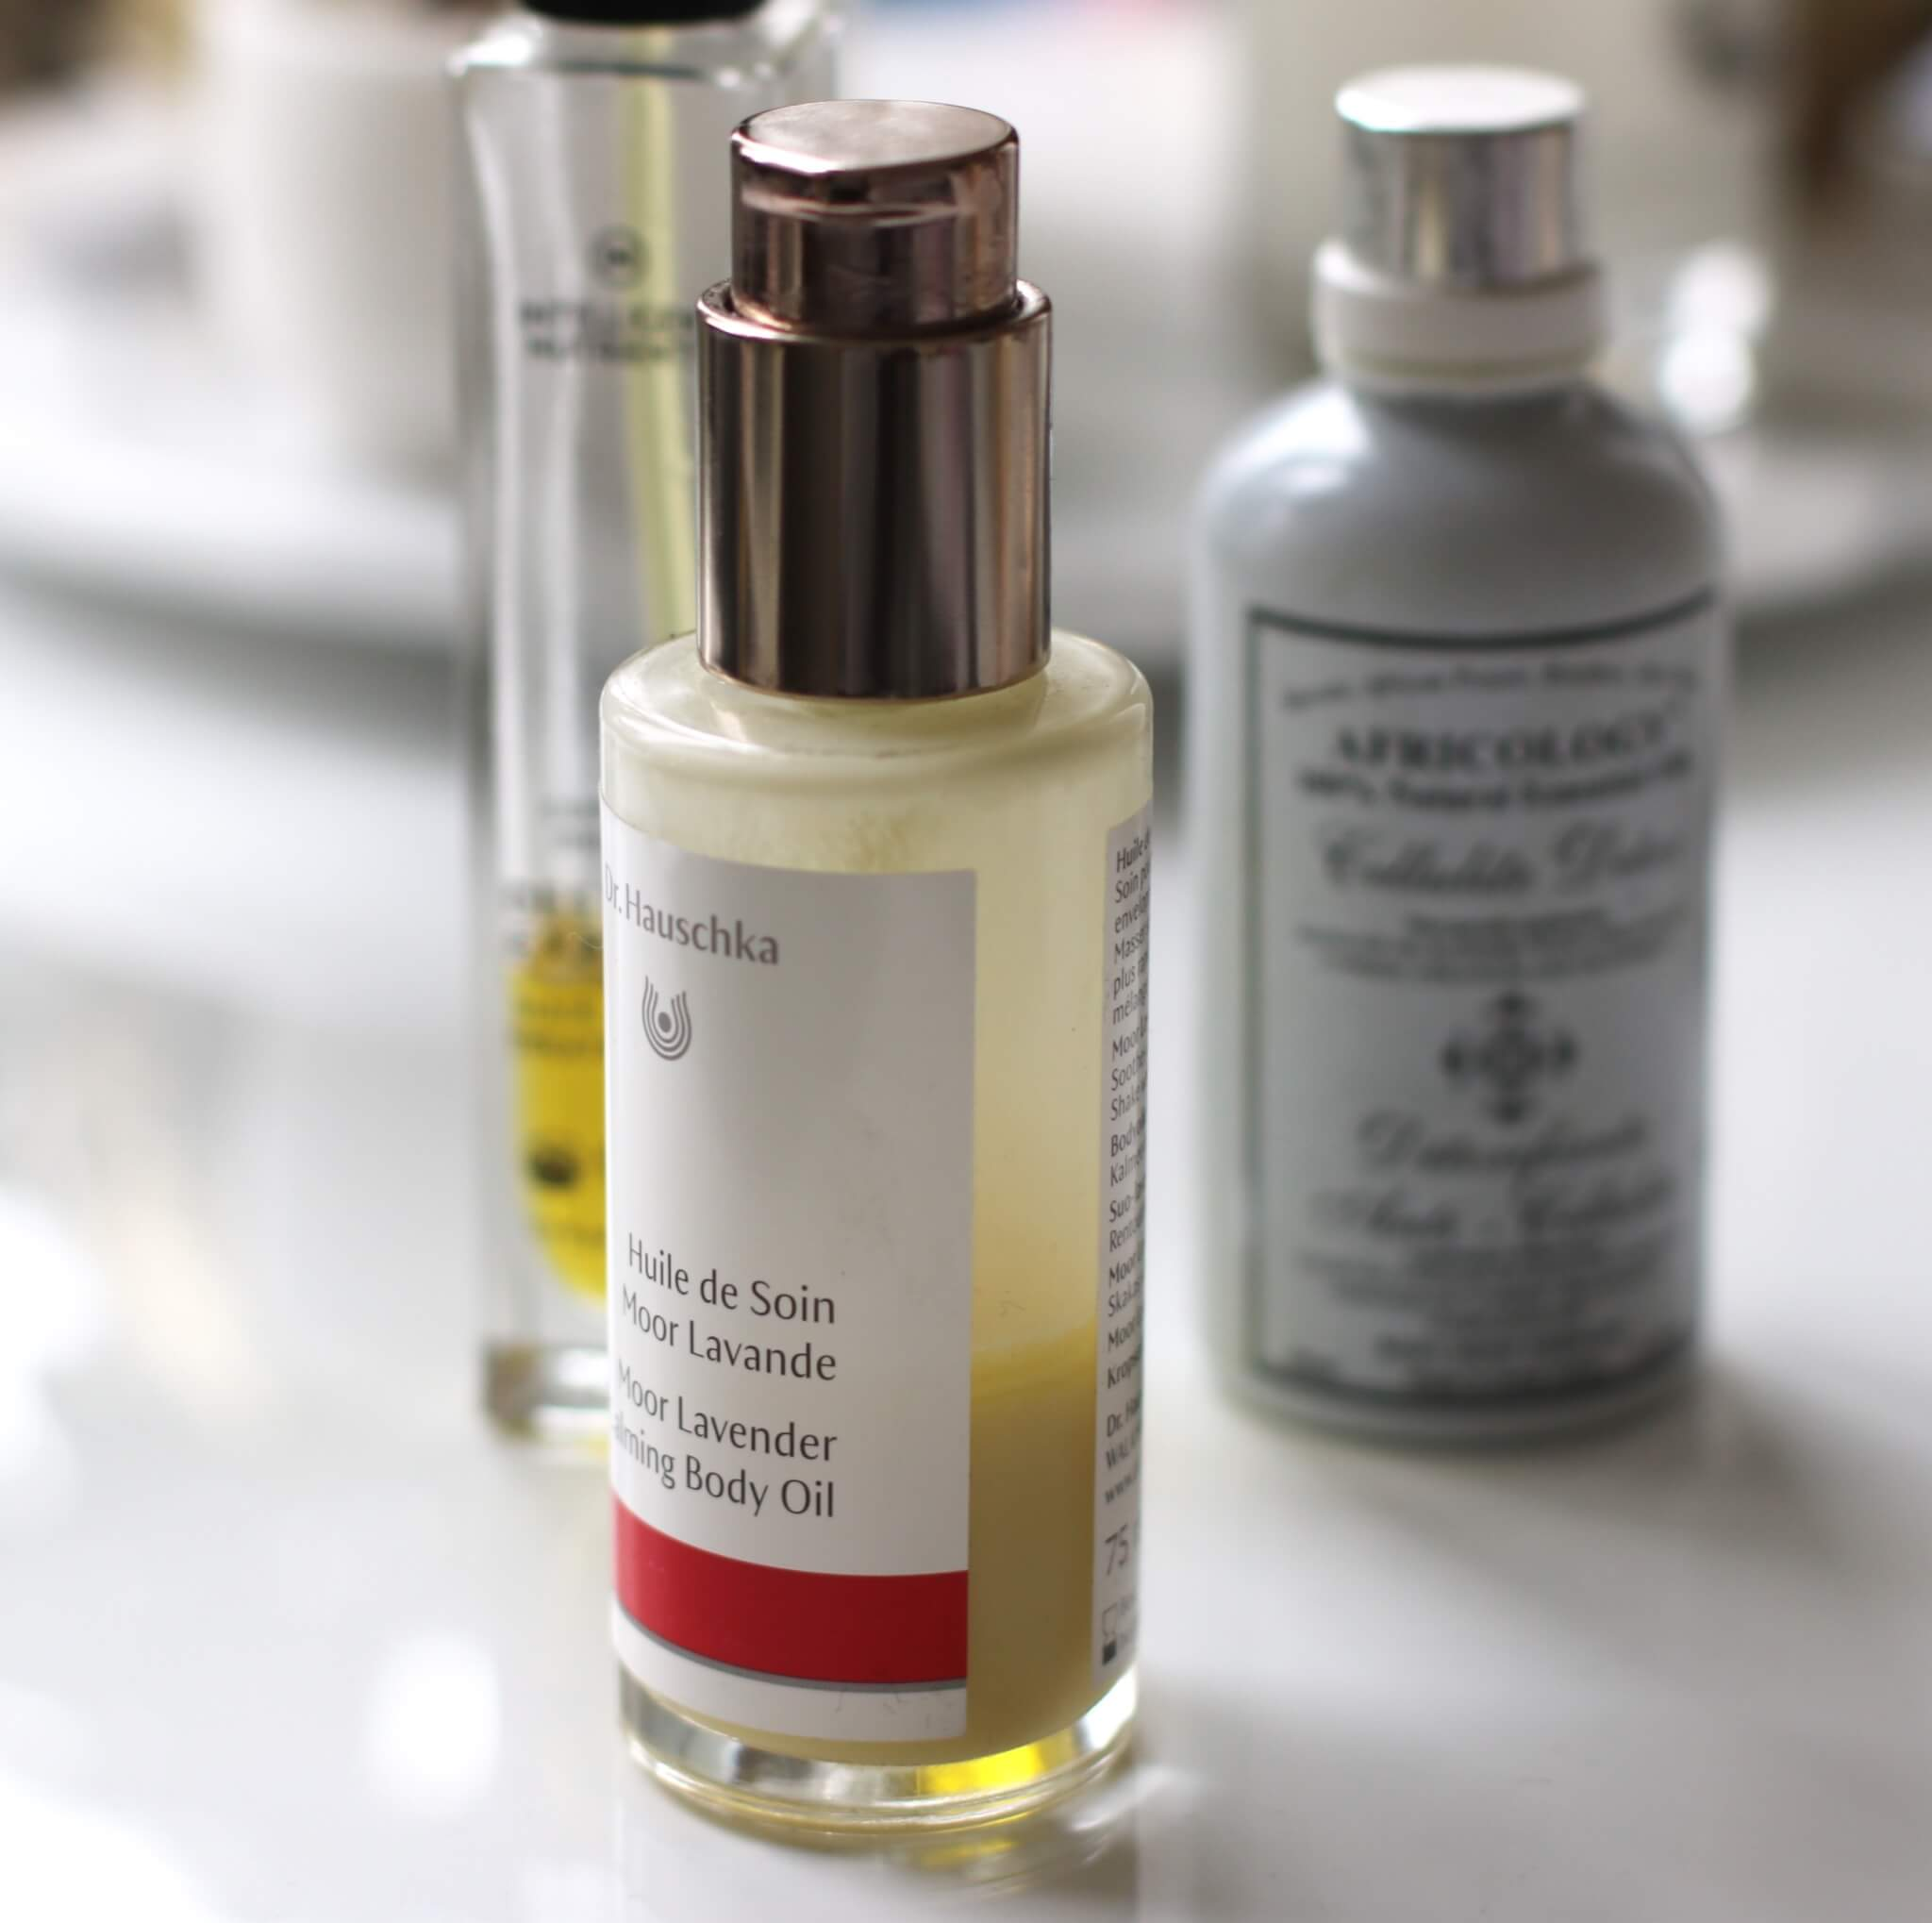 Dr Hauschka body oil